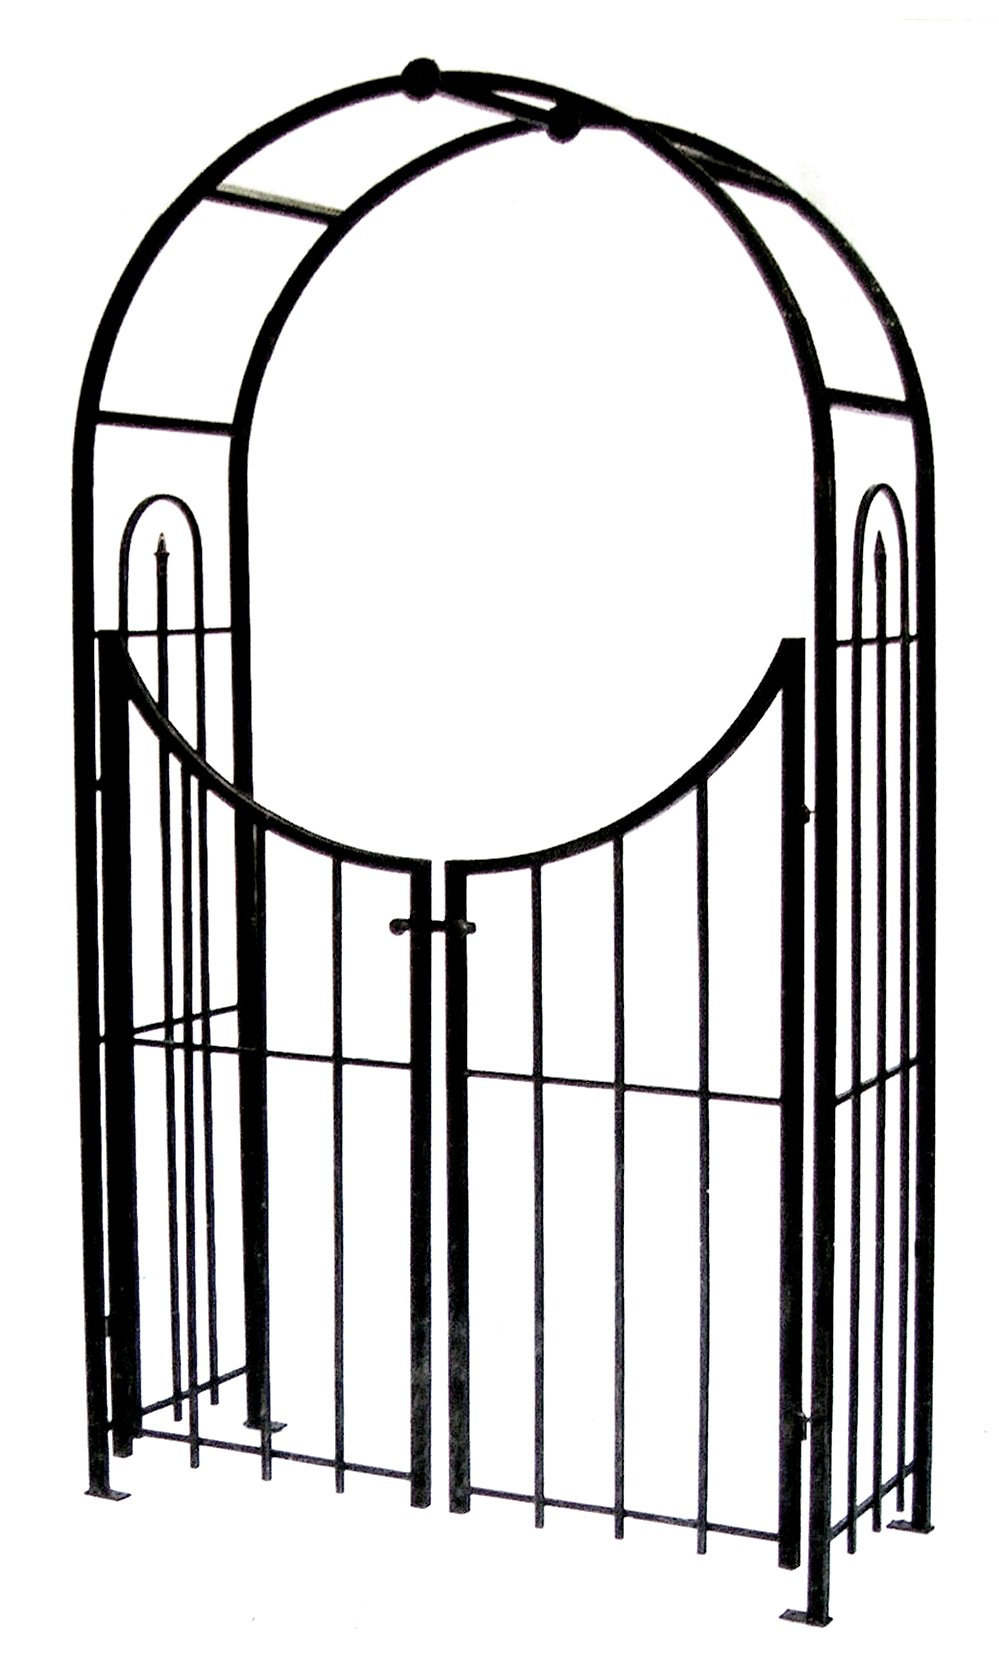 Panacea Products Arched Top Garden Arbor with Gate, Brushed Bronze by Panacea Products